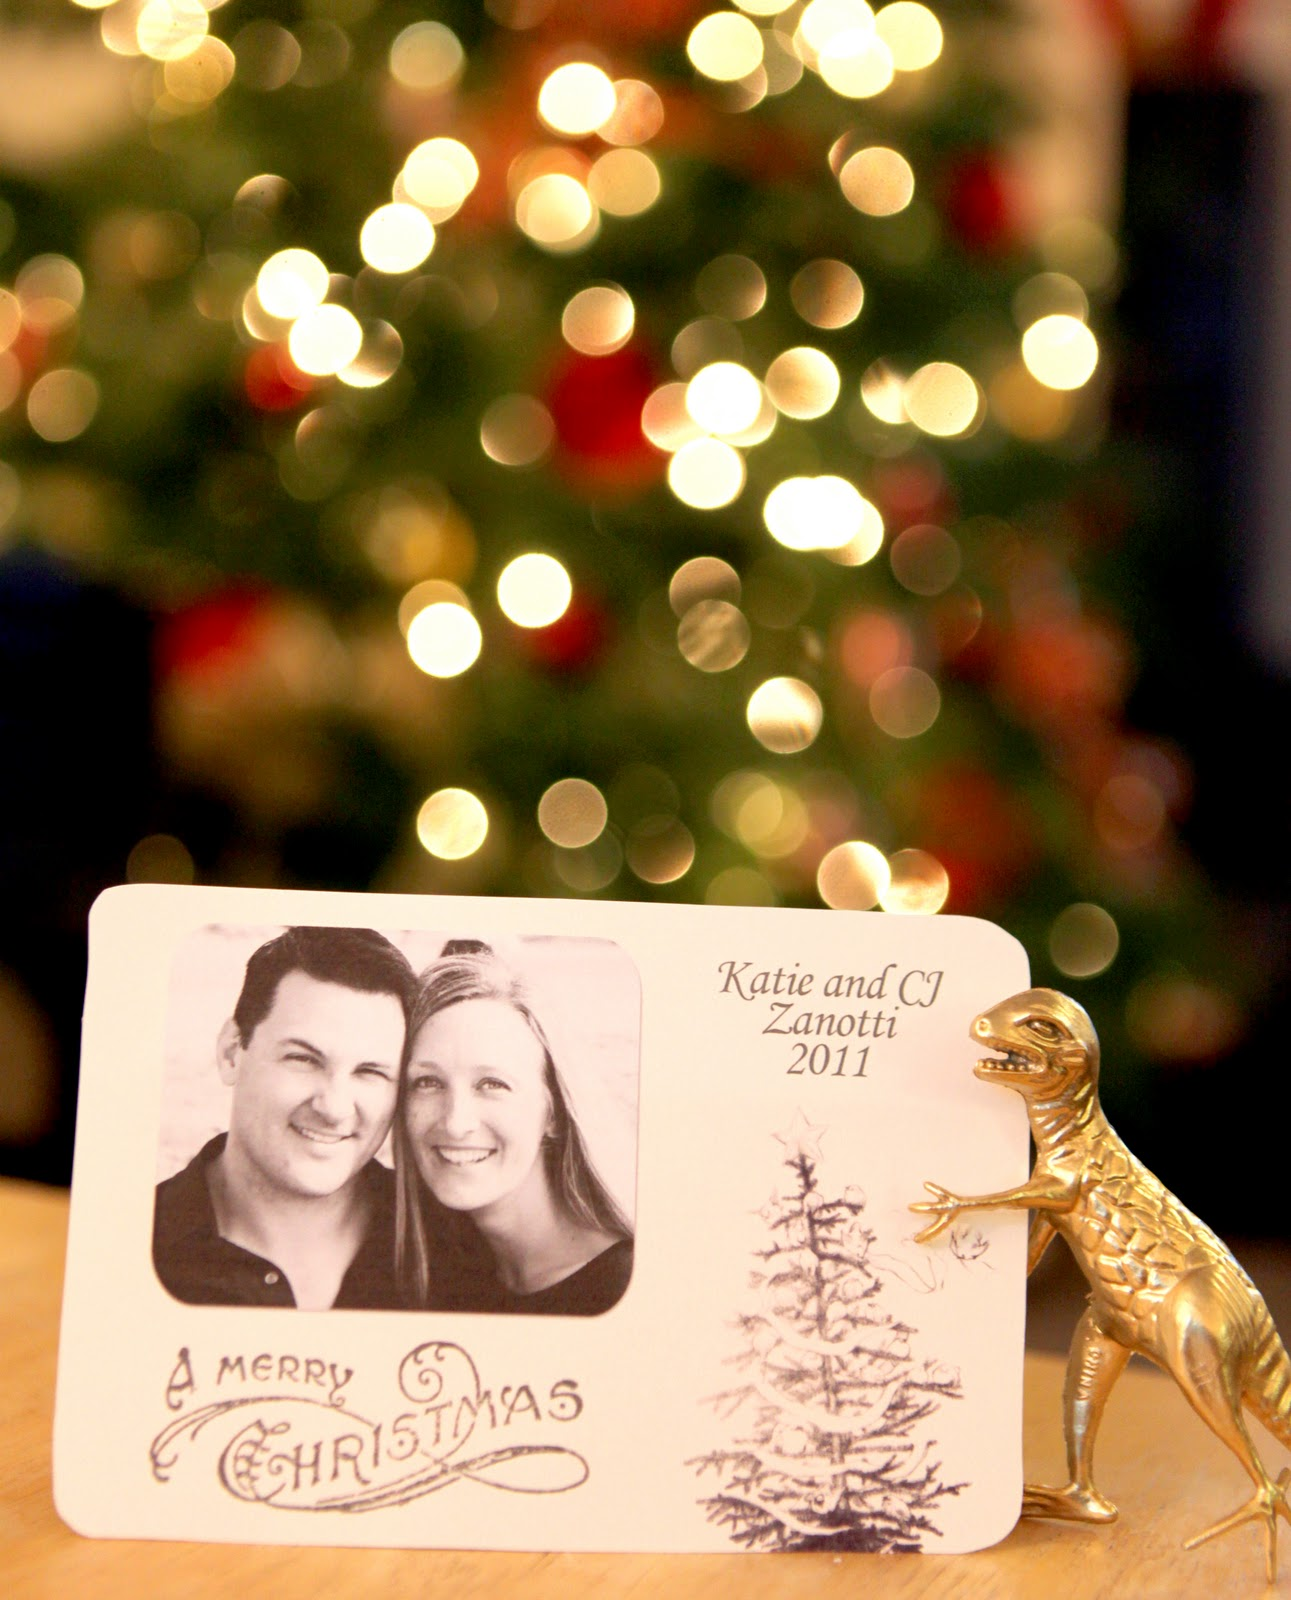 chloe moore photography the blog free christmas card templates - Photoshop Christmas Card Templates